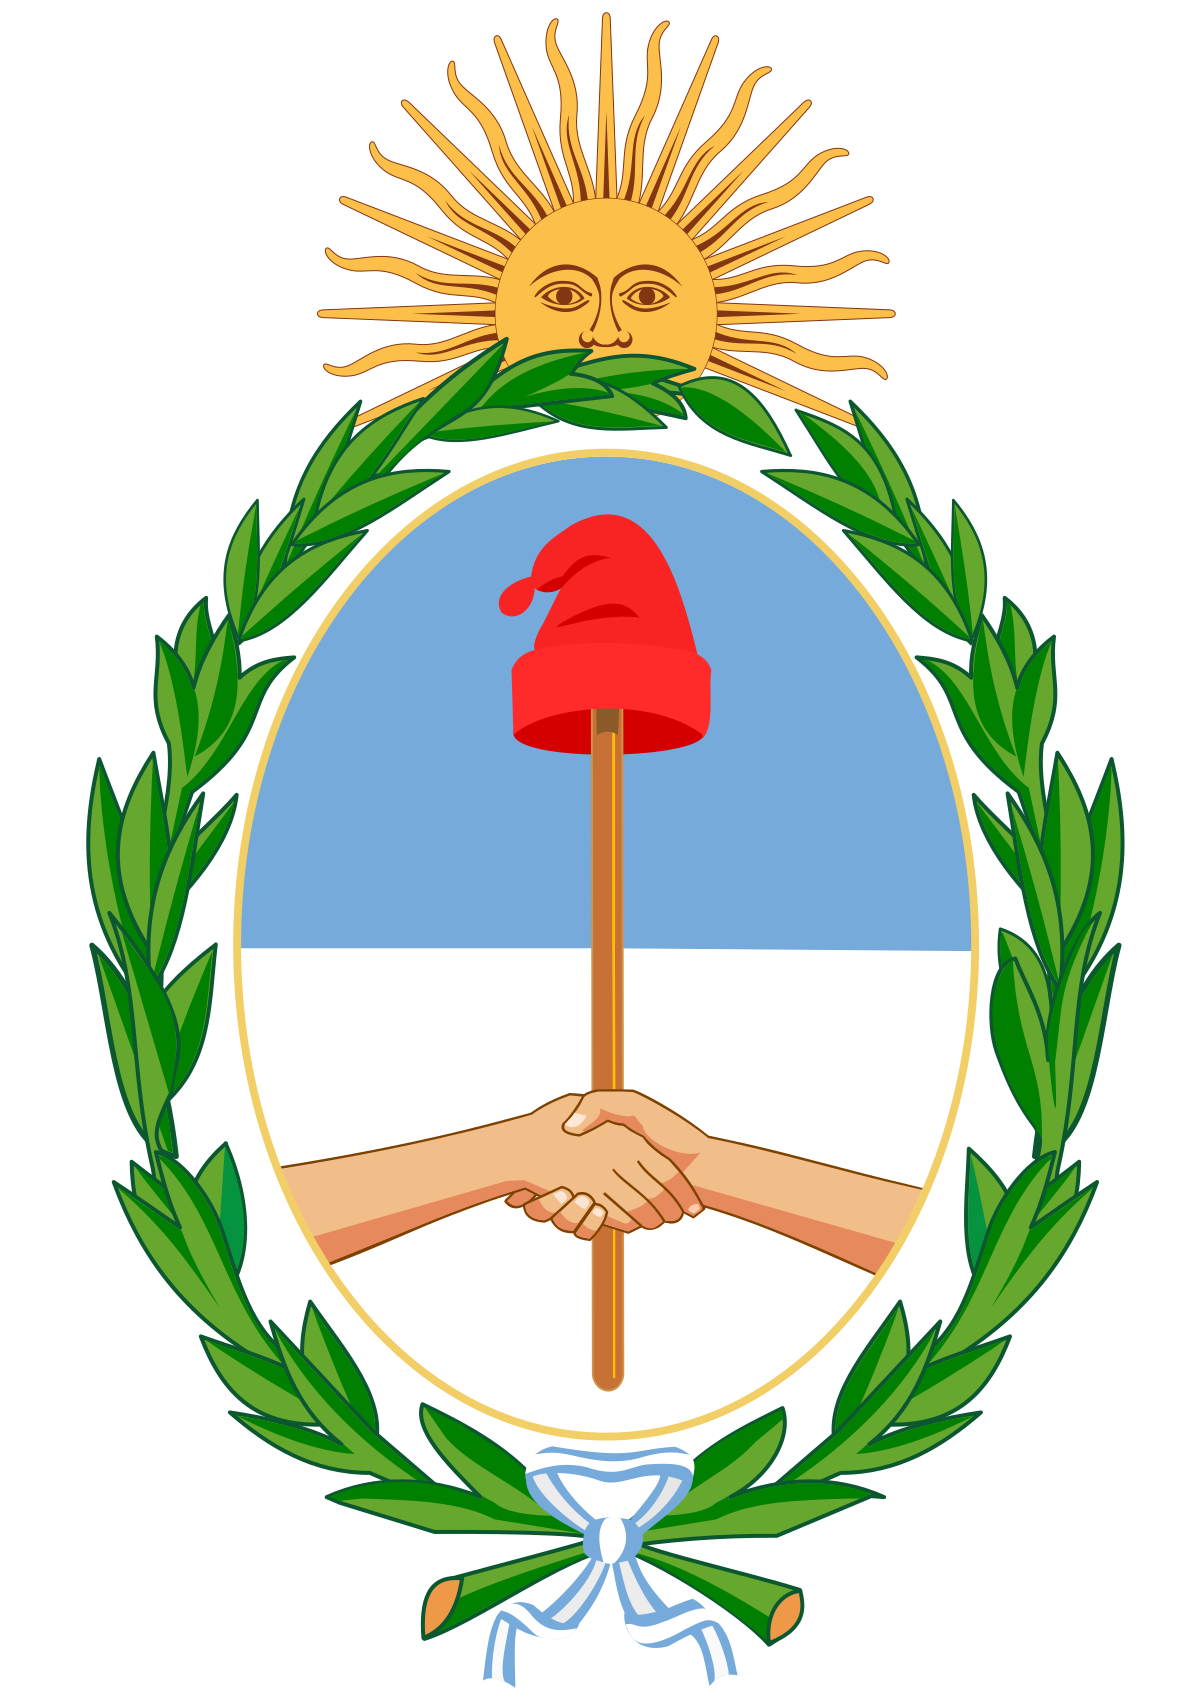 Civil clipart civil law. Argentine wikipedia